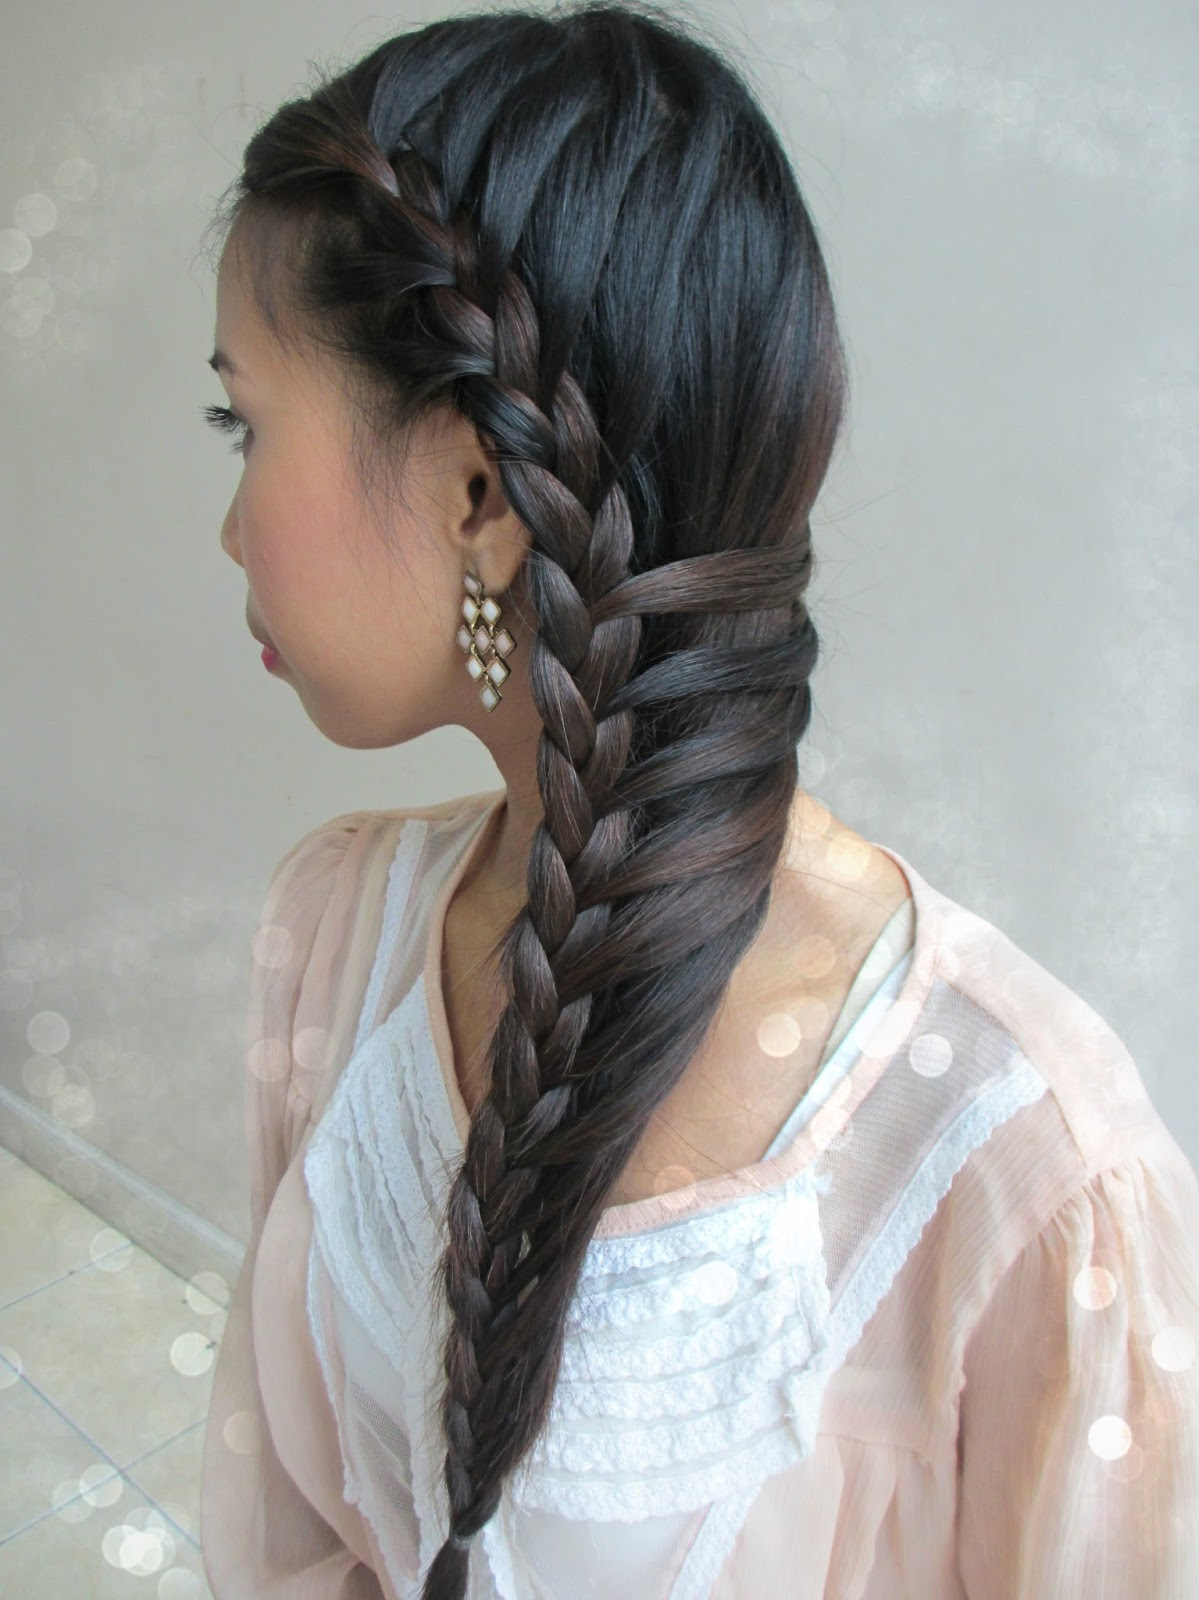 Real Asian Beauty: Side-Swept Mermaid Braid Hair Tutorial